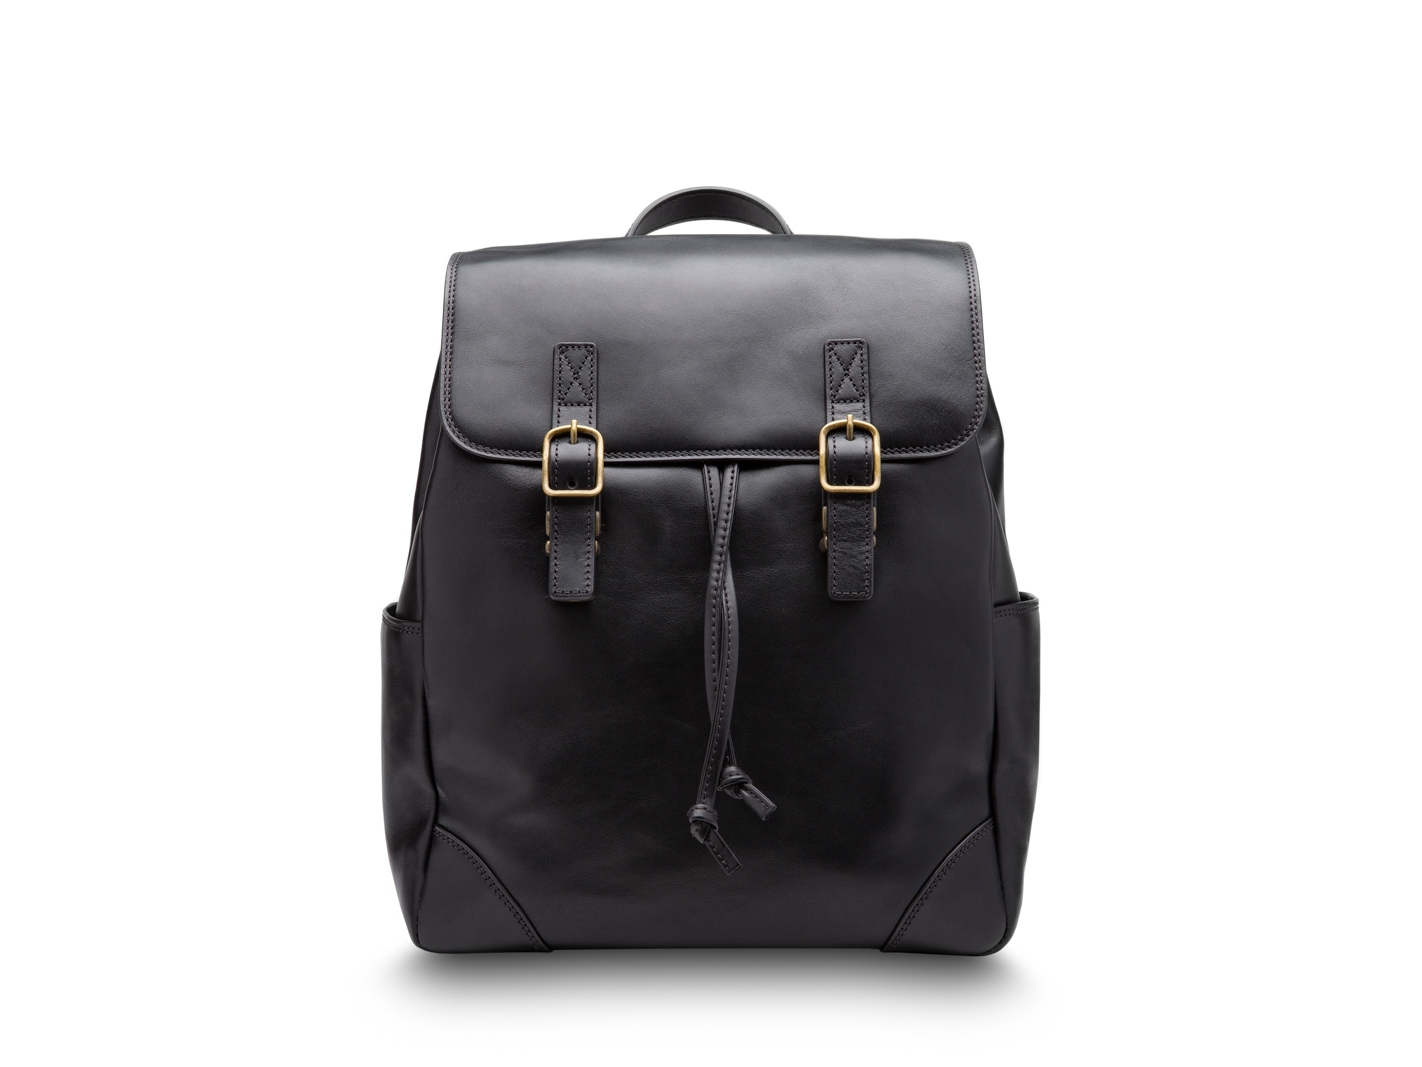 Sparrow Small Backpack-219 Black - 219 Black